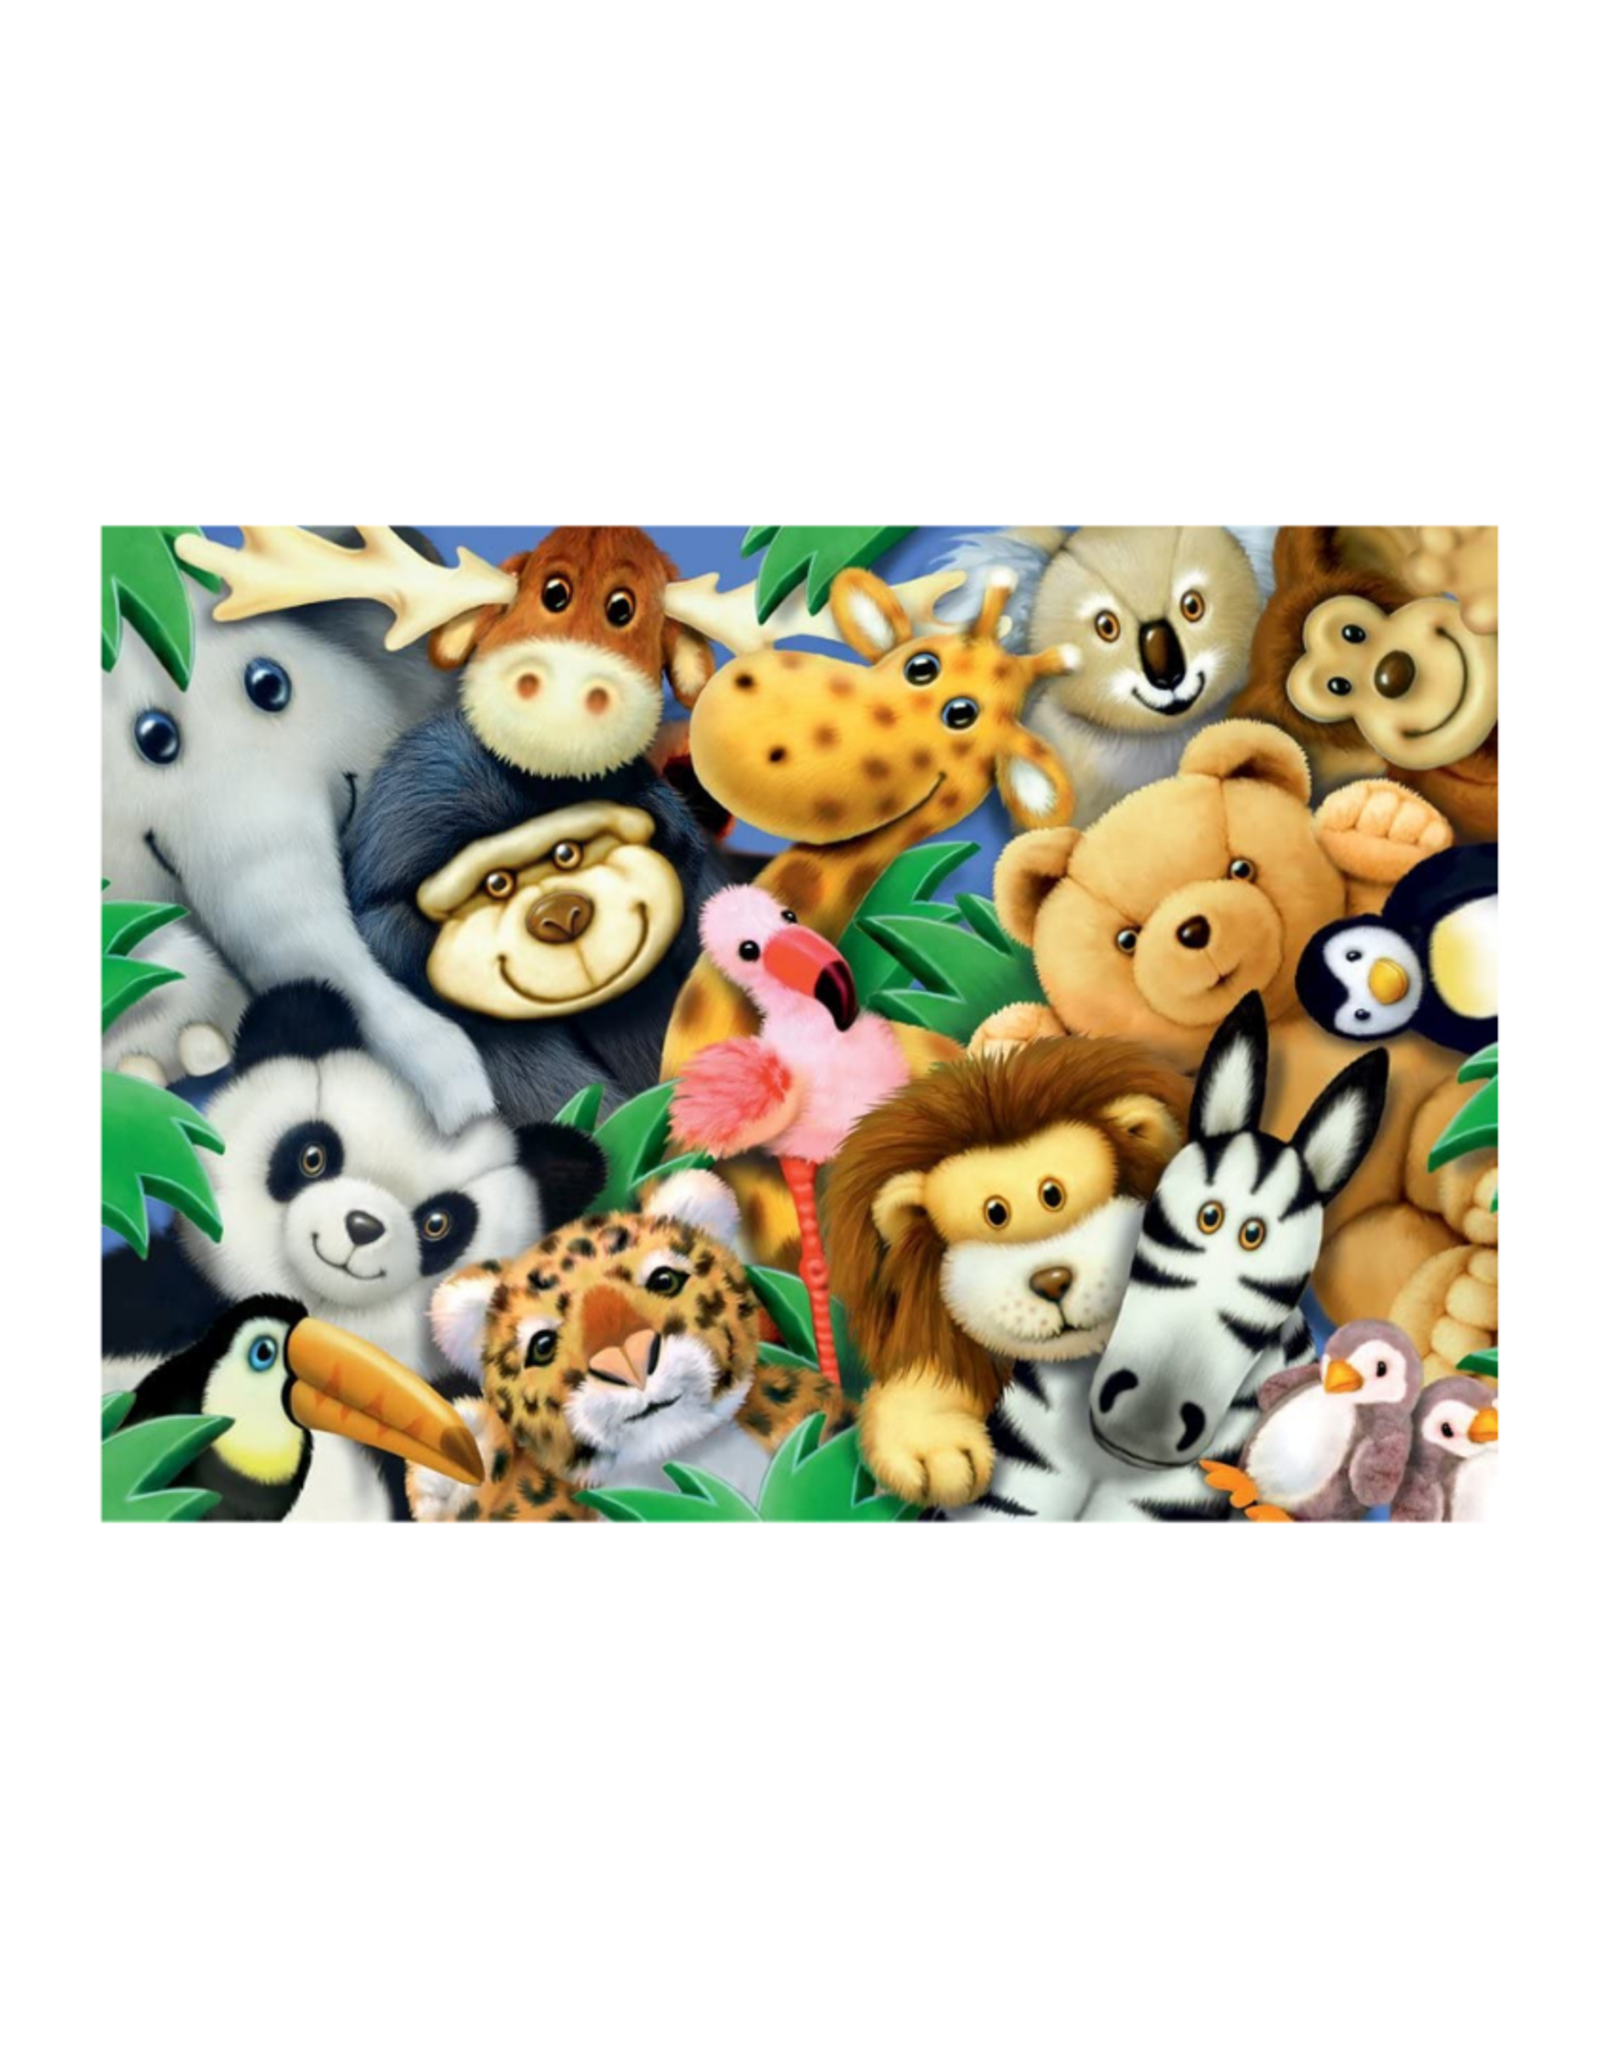 Ravensburger Softies 35pc Puzzle